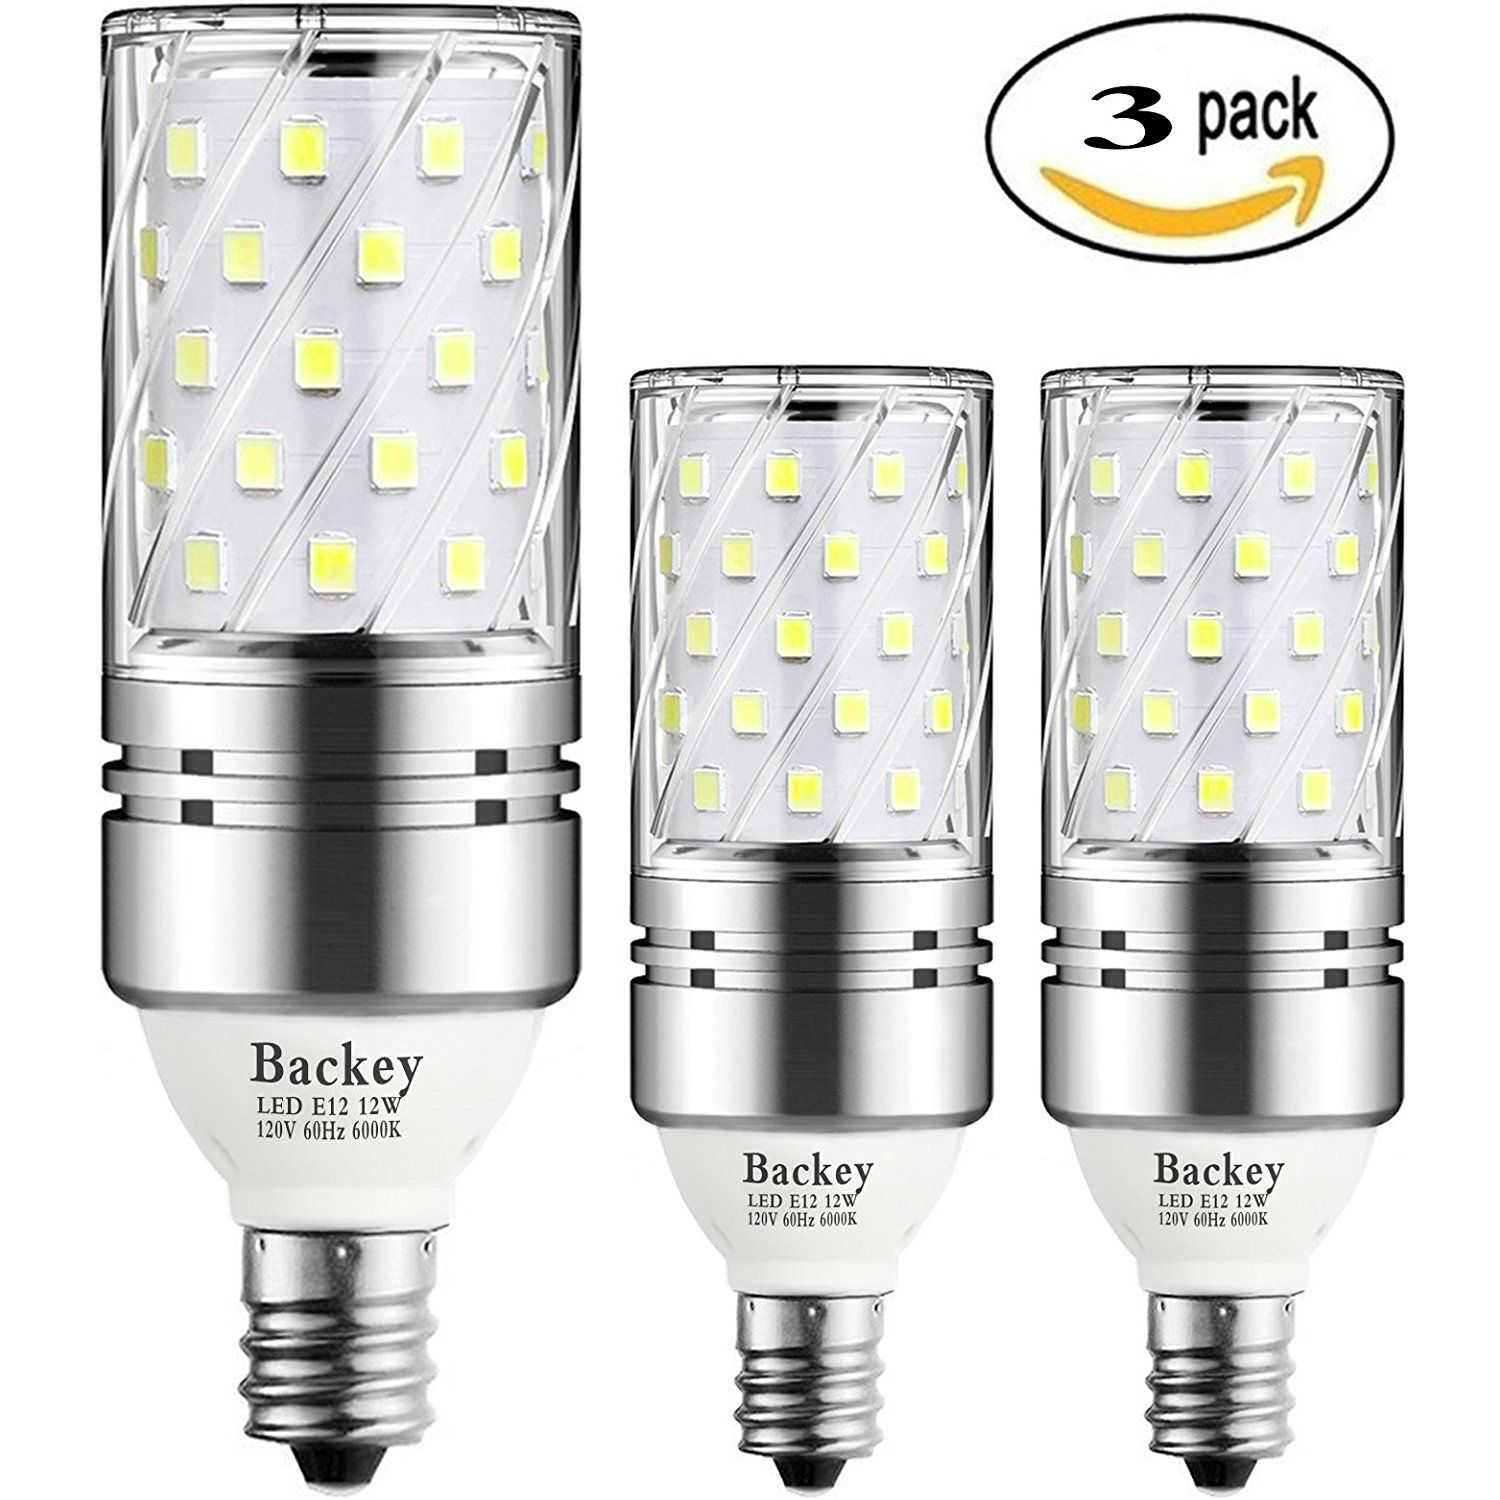 Backey e12 led bulbs12w led candelabra light bulbs 100 watt backey e12 led bulbs12w led candelabra light bulbs 100 watt equivalent 1200lm daylight white 6000k led chandelier bulbs decorative candle base e12 arubaitofo Images